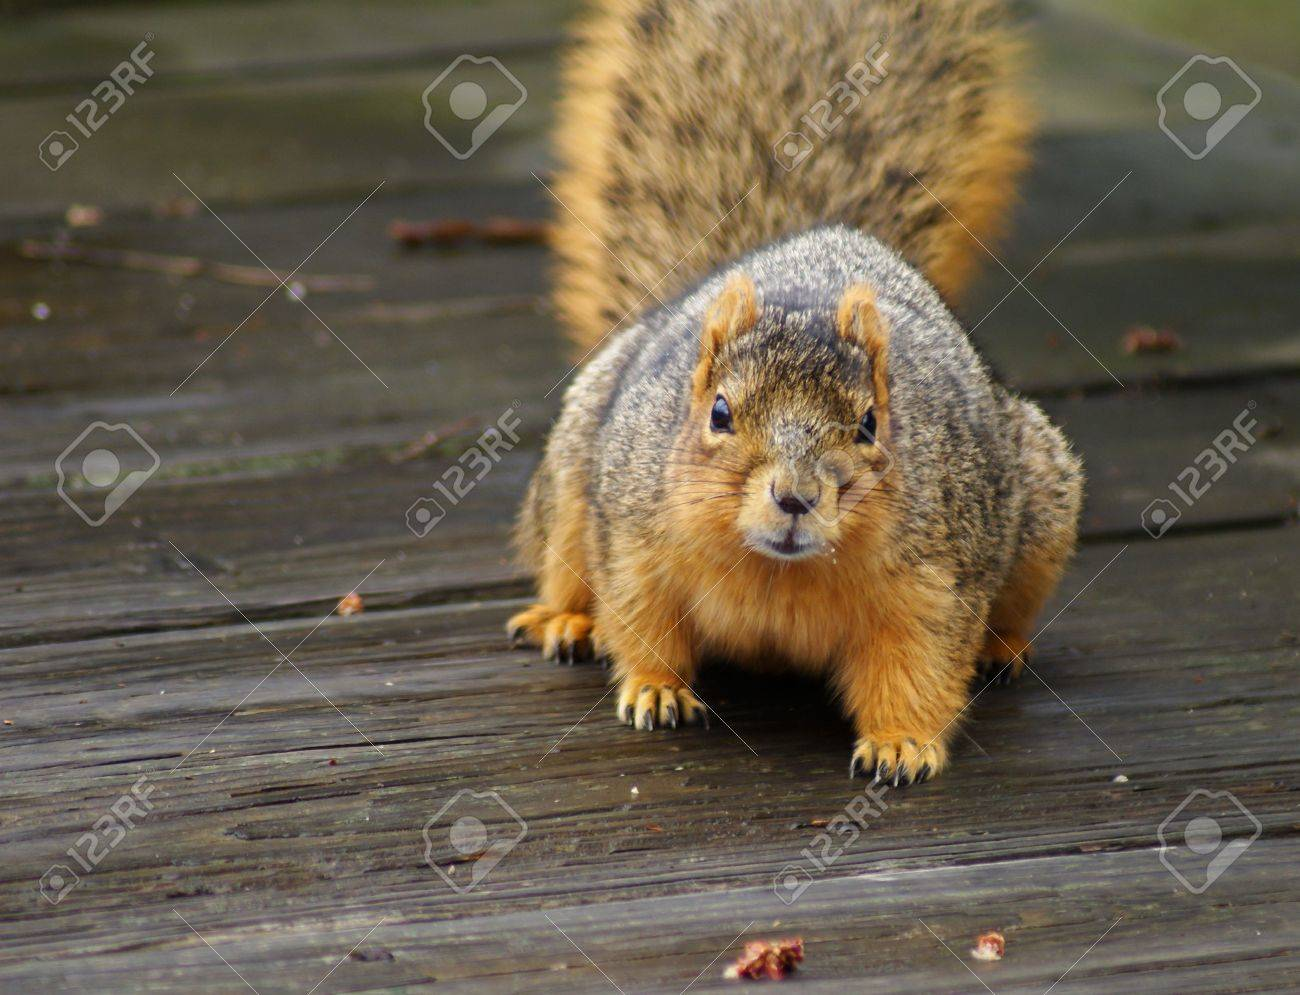 Capture of a curious brown squirrel in early spring. Stock Photo - 4718621